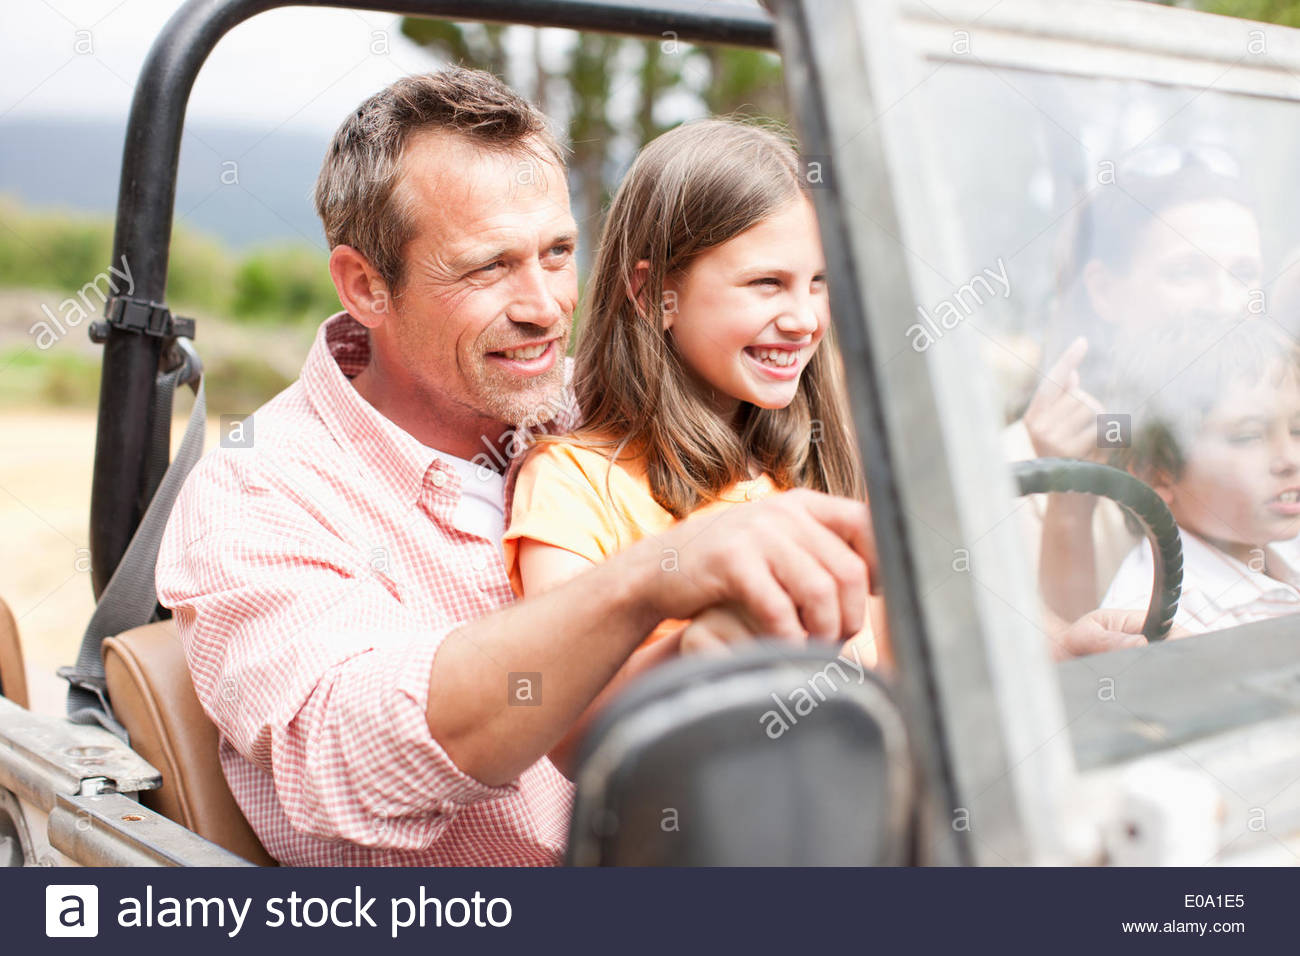 Family riding in vehicle - Stock Image